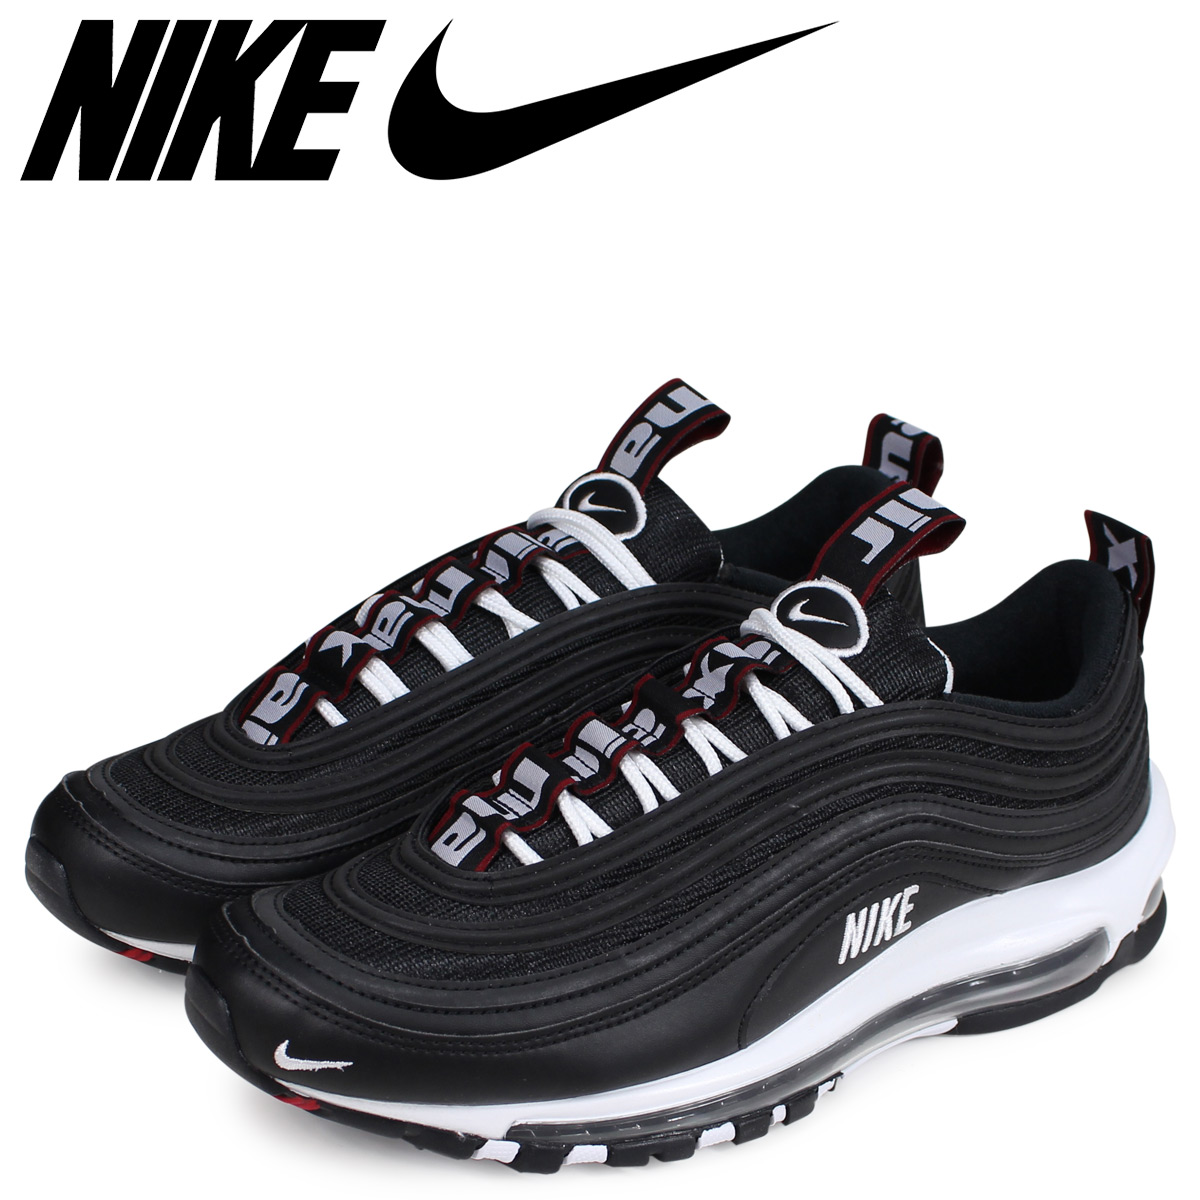 save off e56c7 f8878 NIKE Kie Ney AMAX 97 sneakers men AIR MAX 97 PREMIUM black black 312,834-008